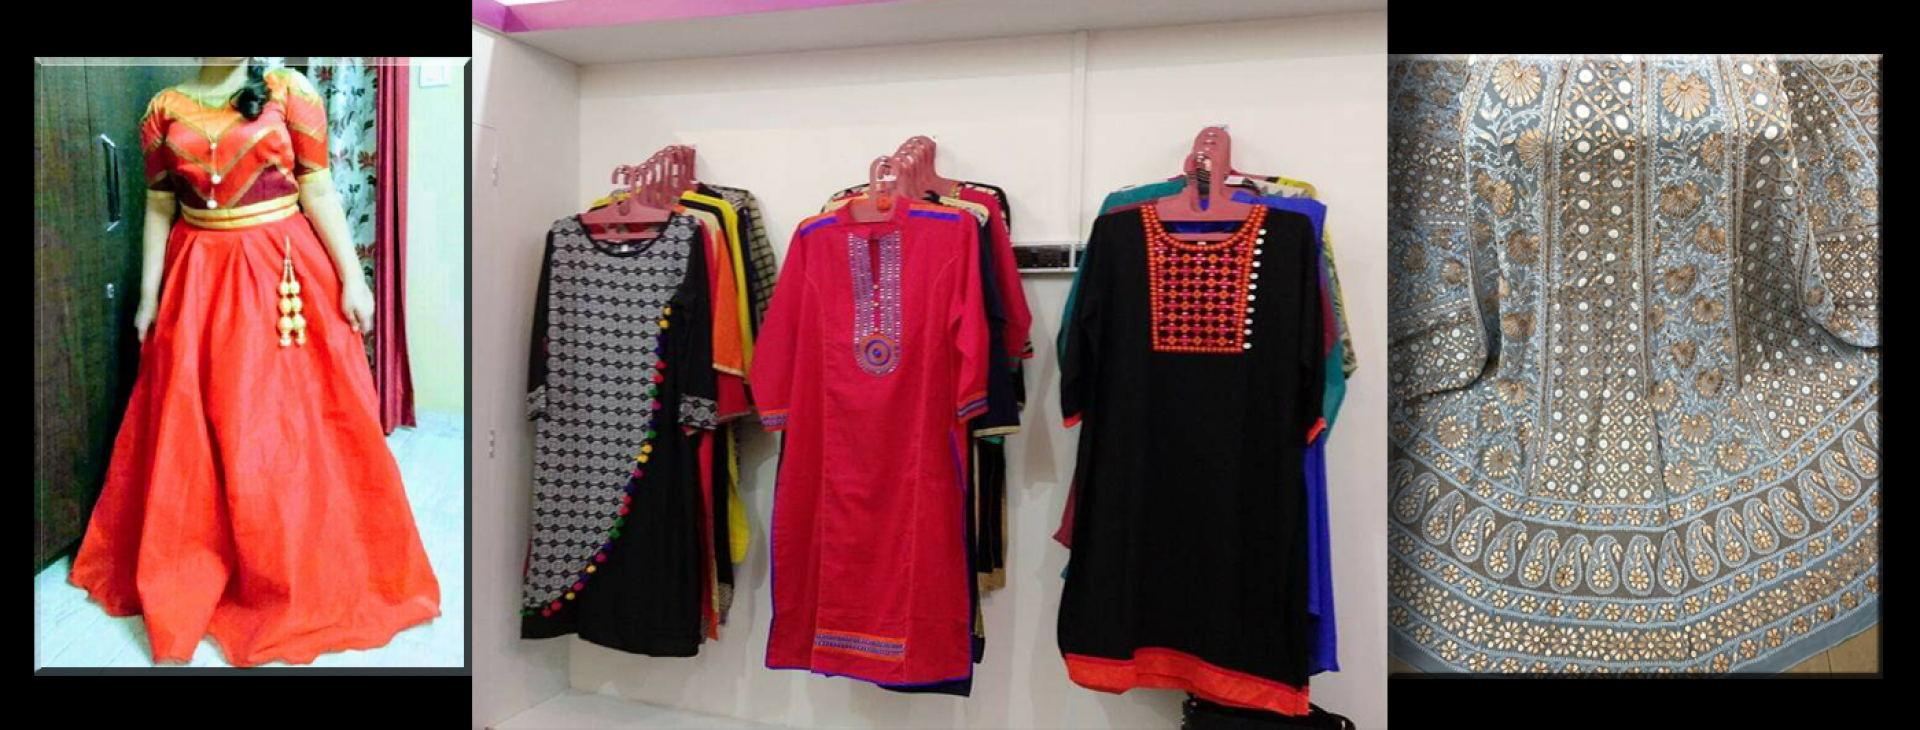 Best Boutique in Lucknow